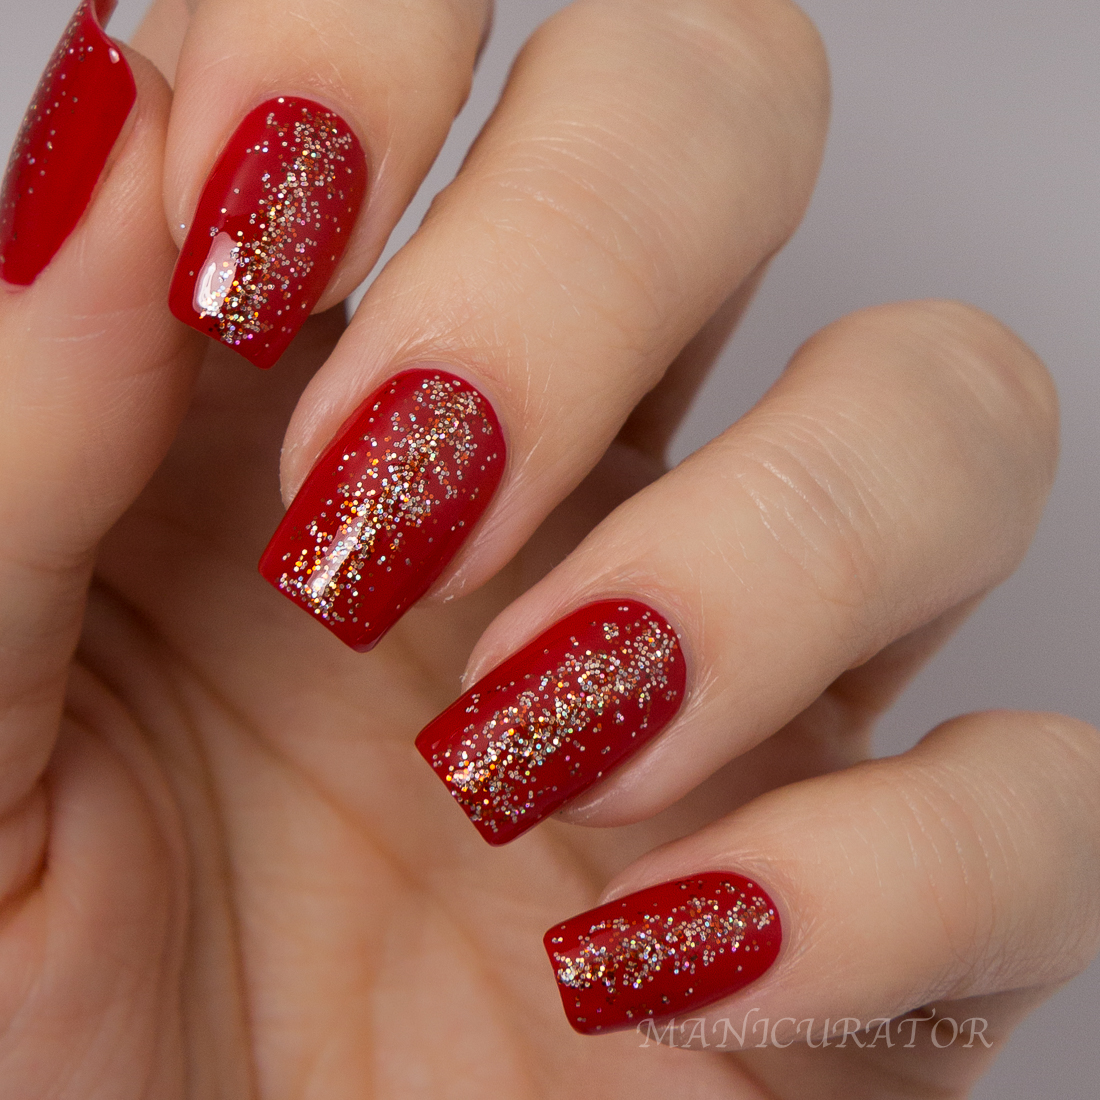 Manicurator Gloss48 Floss Gloss Feature Nail Art Giveaway